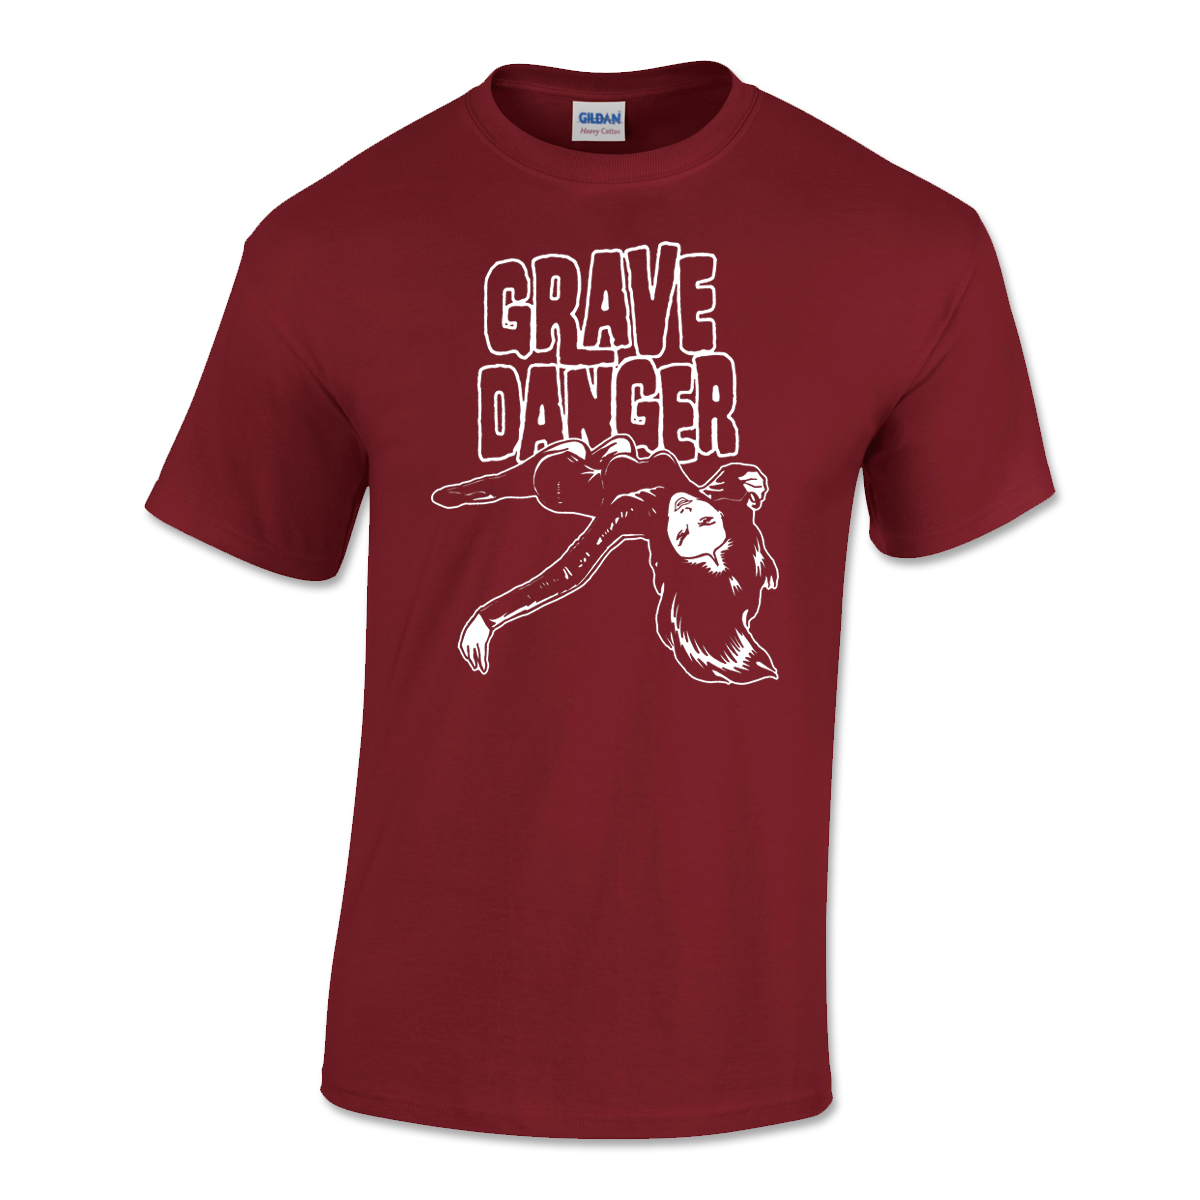 Grave Danger Mens T-shirt Cardinal Red